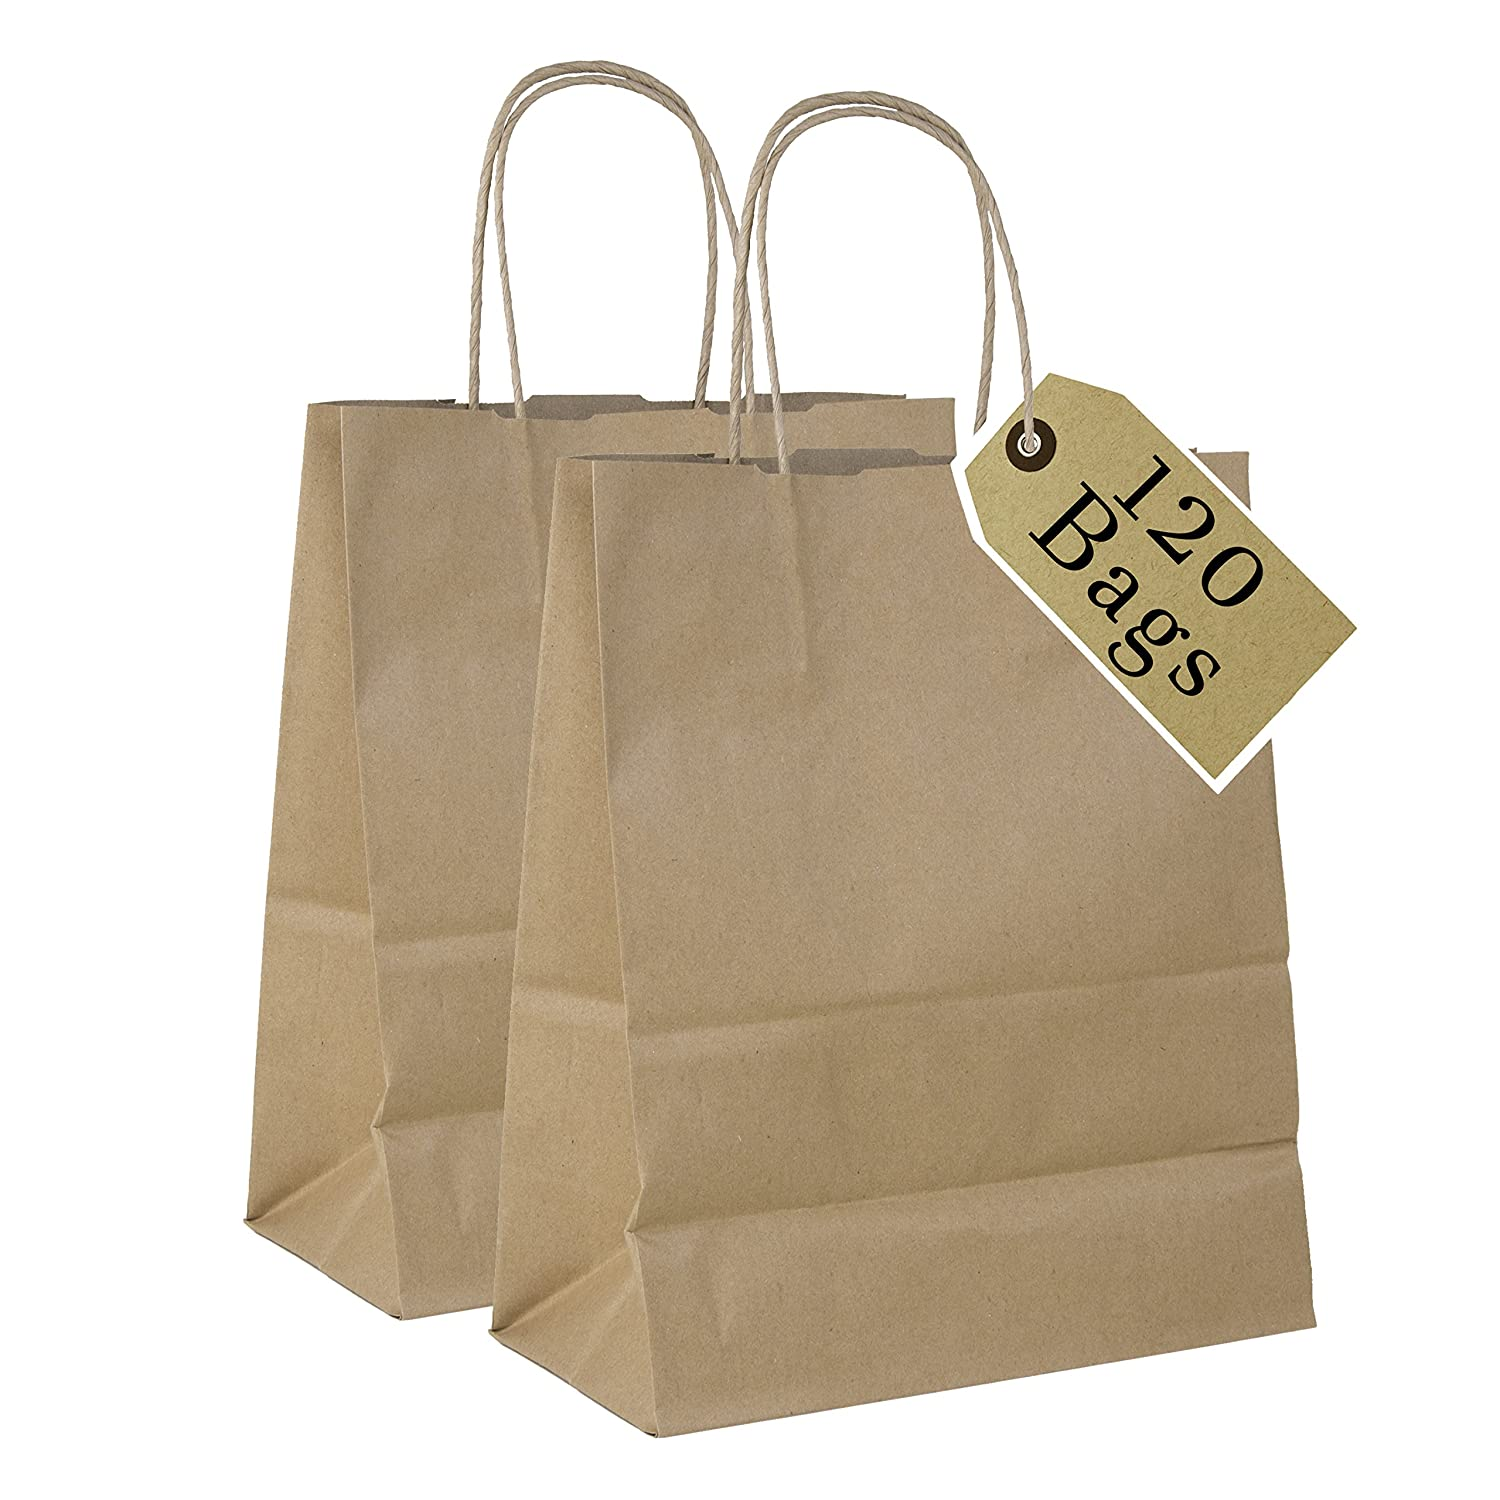 Incredible Packaging- 8 x 5 x 10 White Kraft Paper Bags with Handles for Shopping, Retail and Merchandise. Strong and Reusable -20 Bags Count - 80 Paper Thickness Perfect Present Wrap